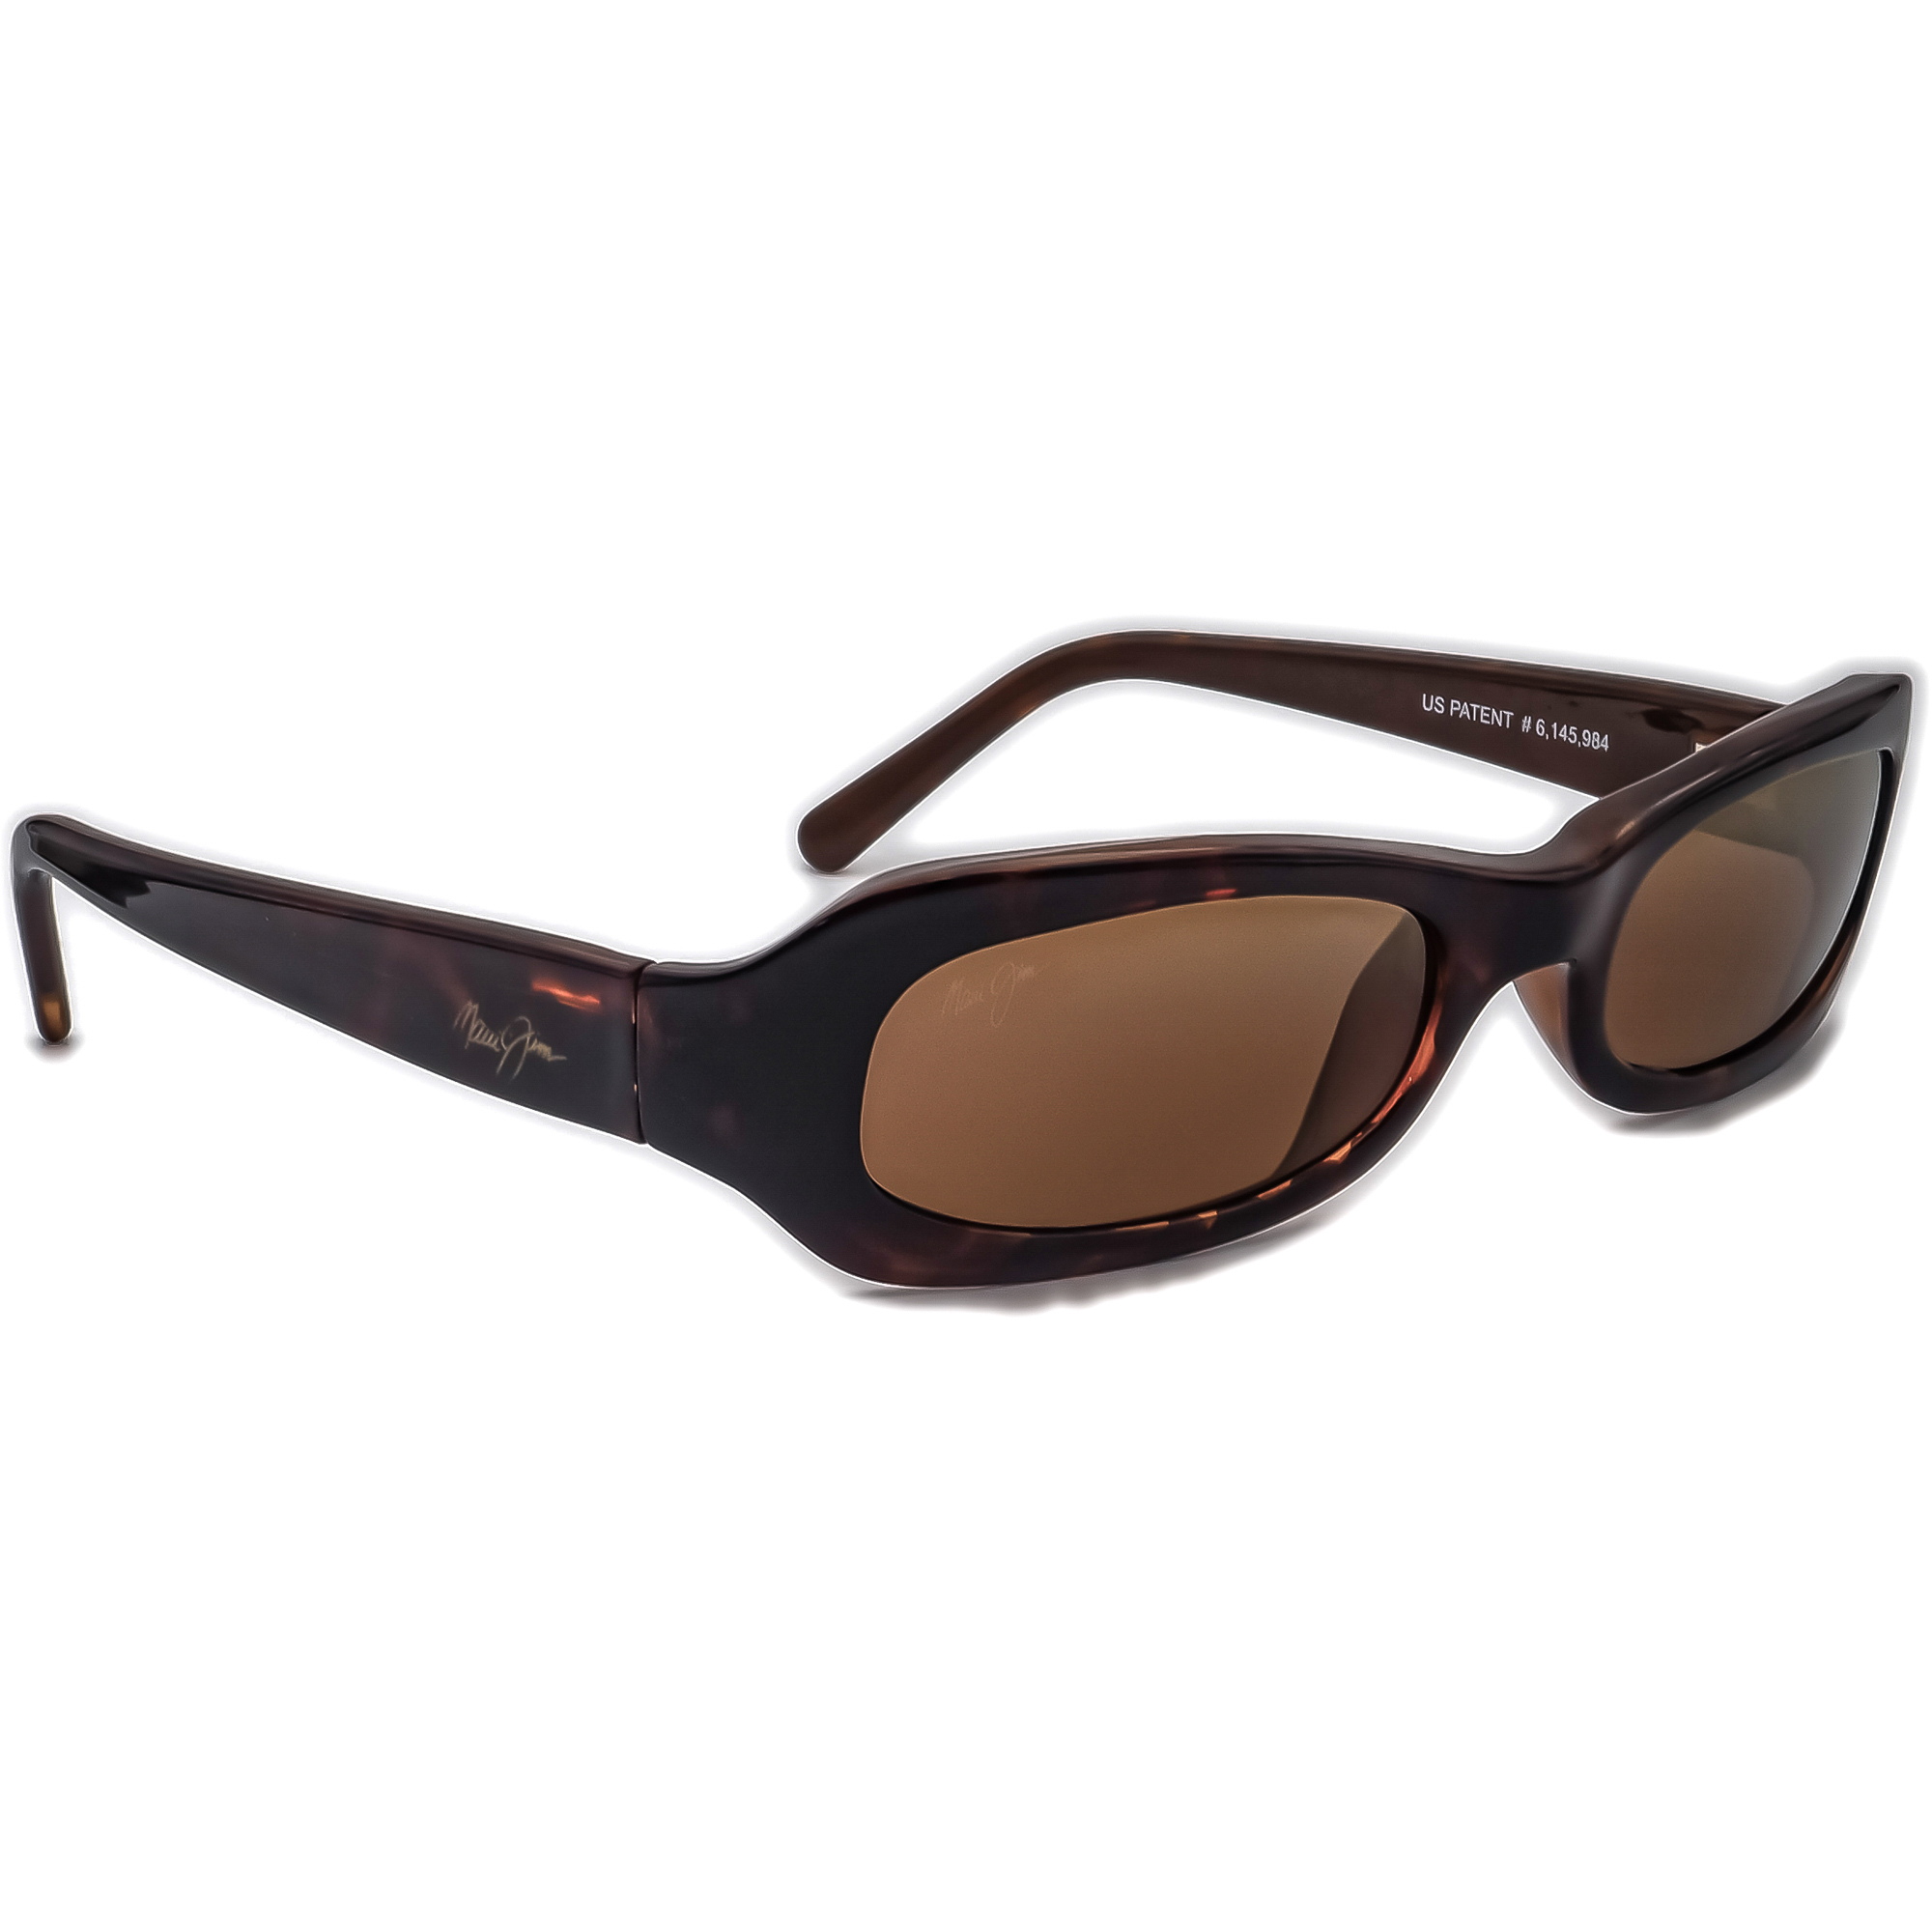 Maui Jim MJ 190-10 Polarized Sunglasses